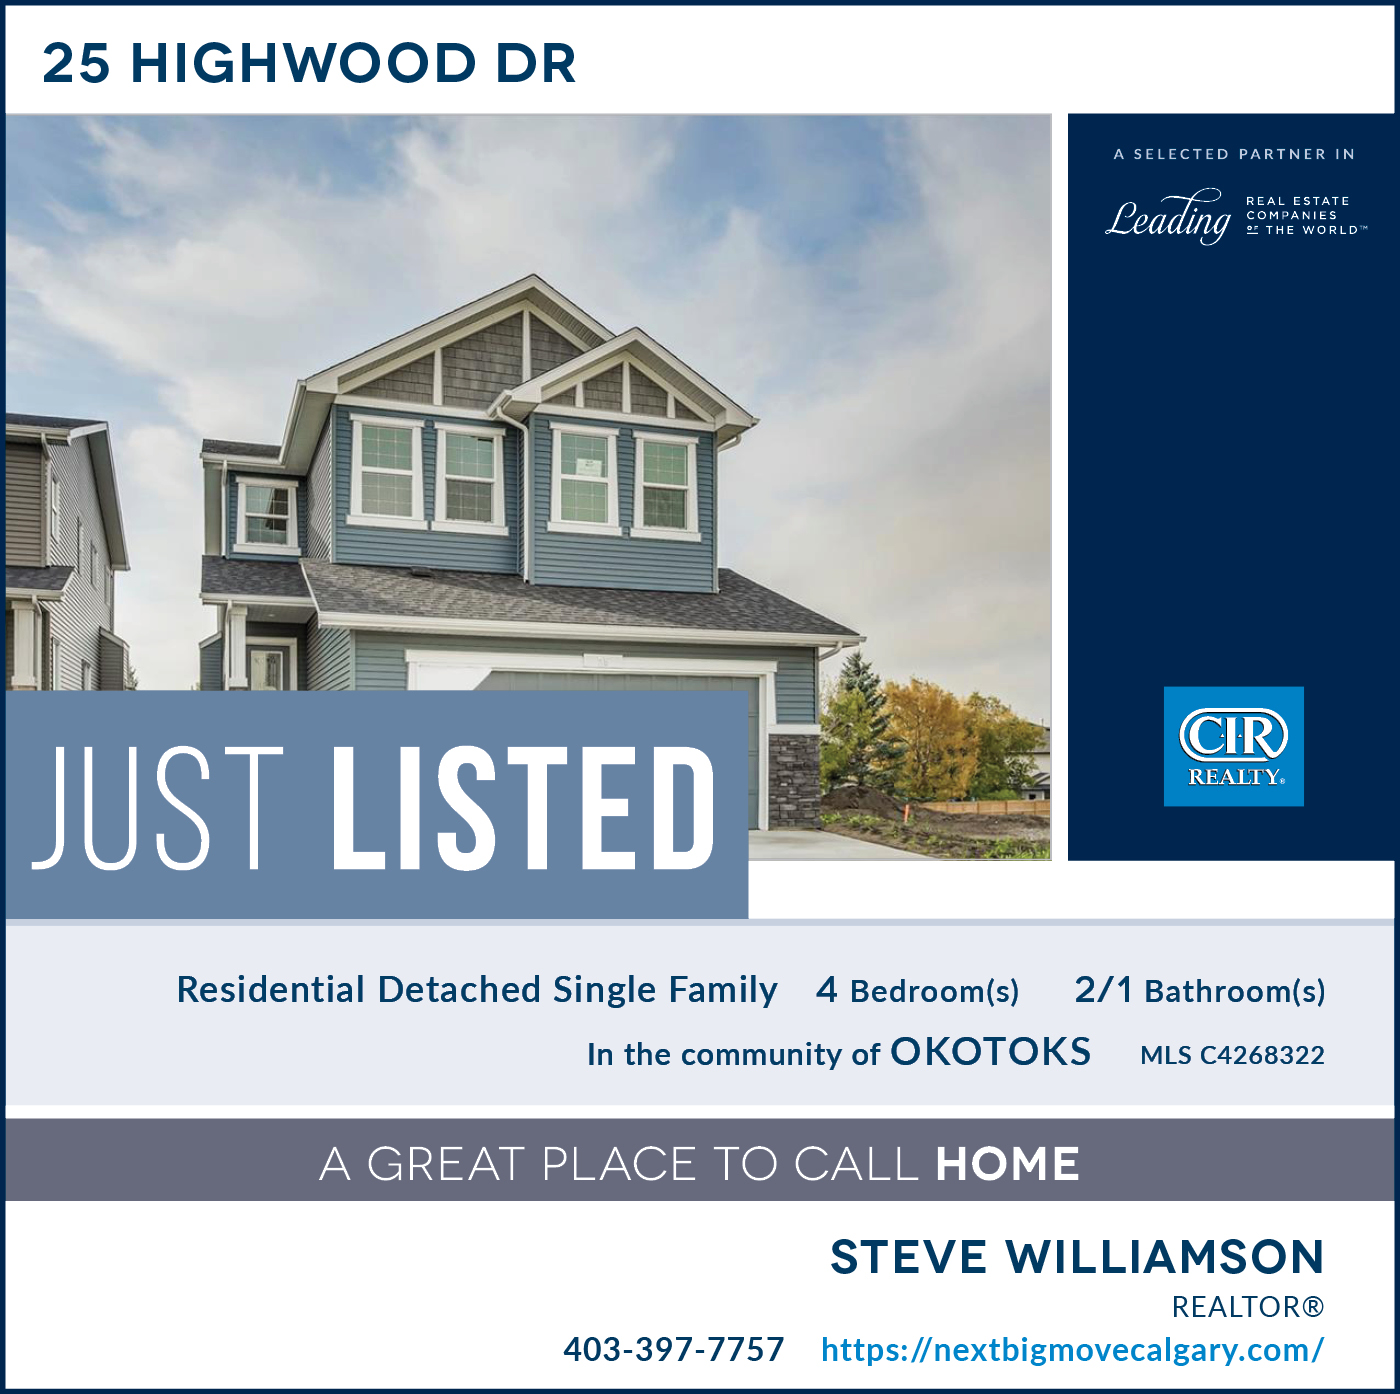 Just Listed - 25 Highwood Dr Okotoks